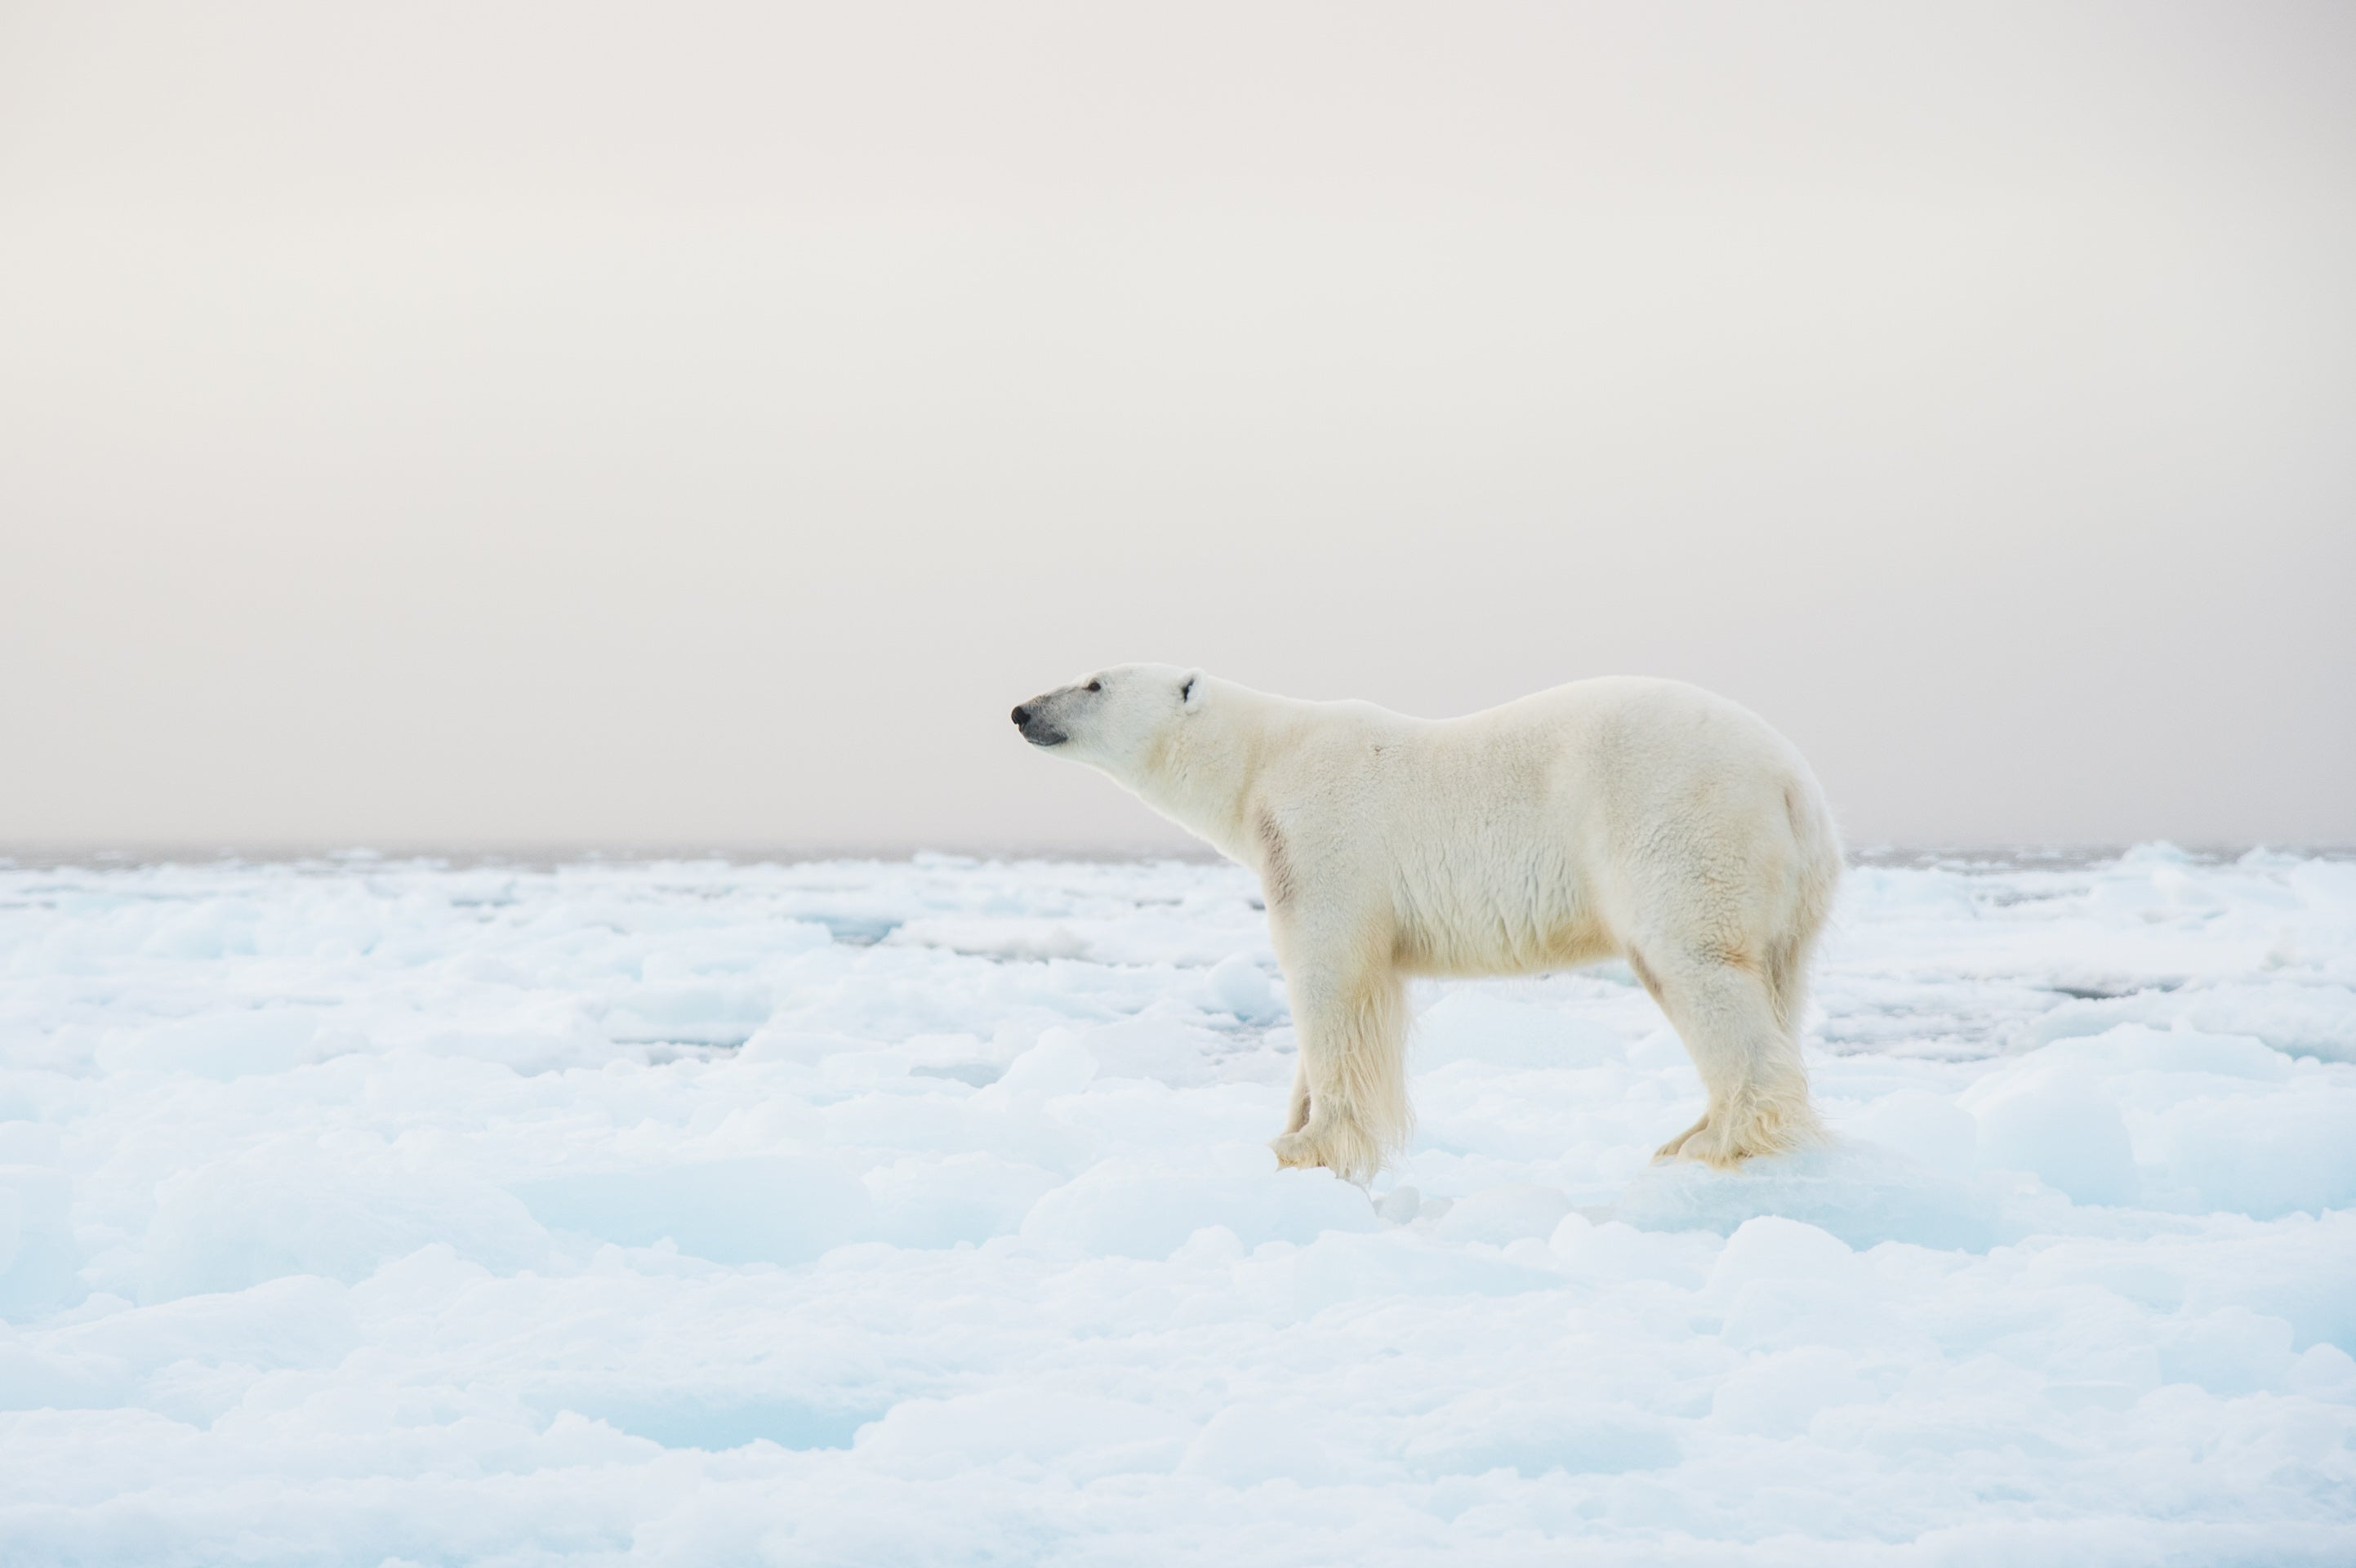 Polar bear on ice photo by Audun Lie Dahl